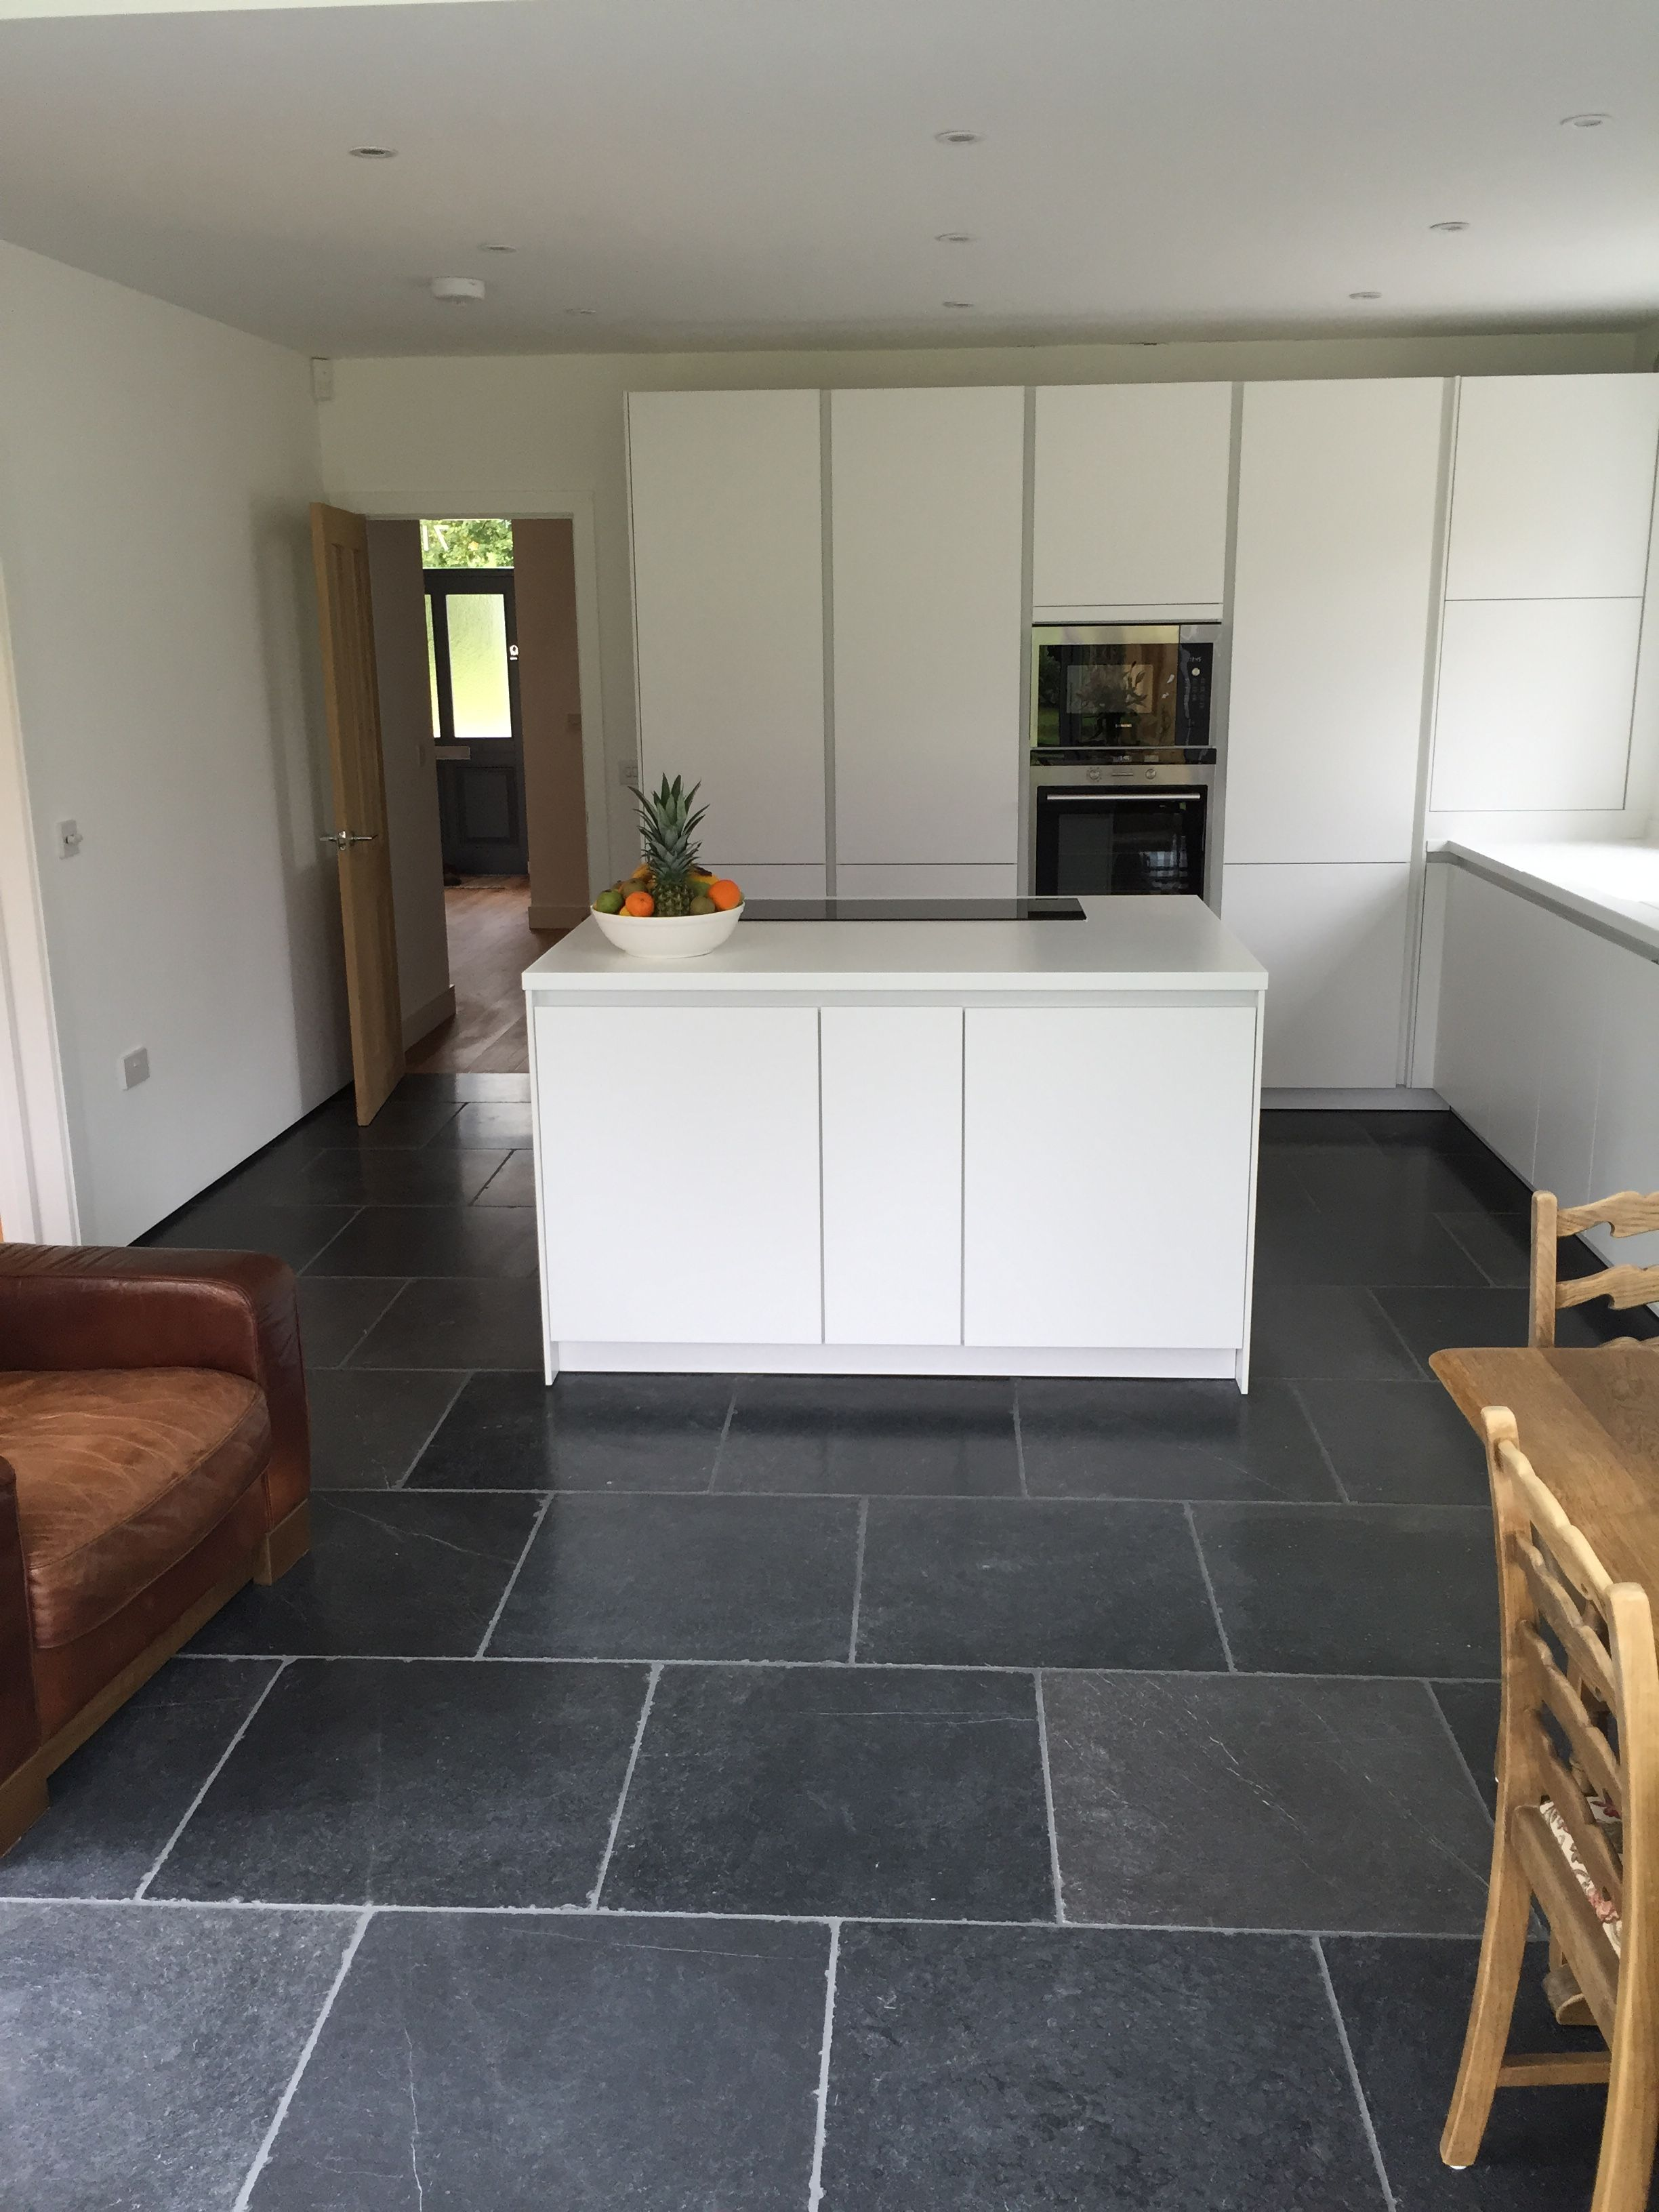 Aged Blue Kitchen Flagstones, These Tiles Are Suitable For Inside And  Outside Projects. Sealer